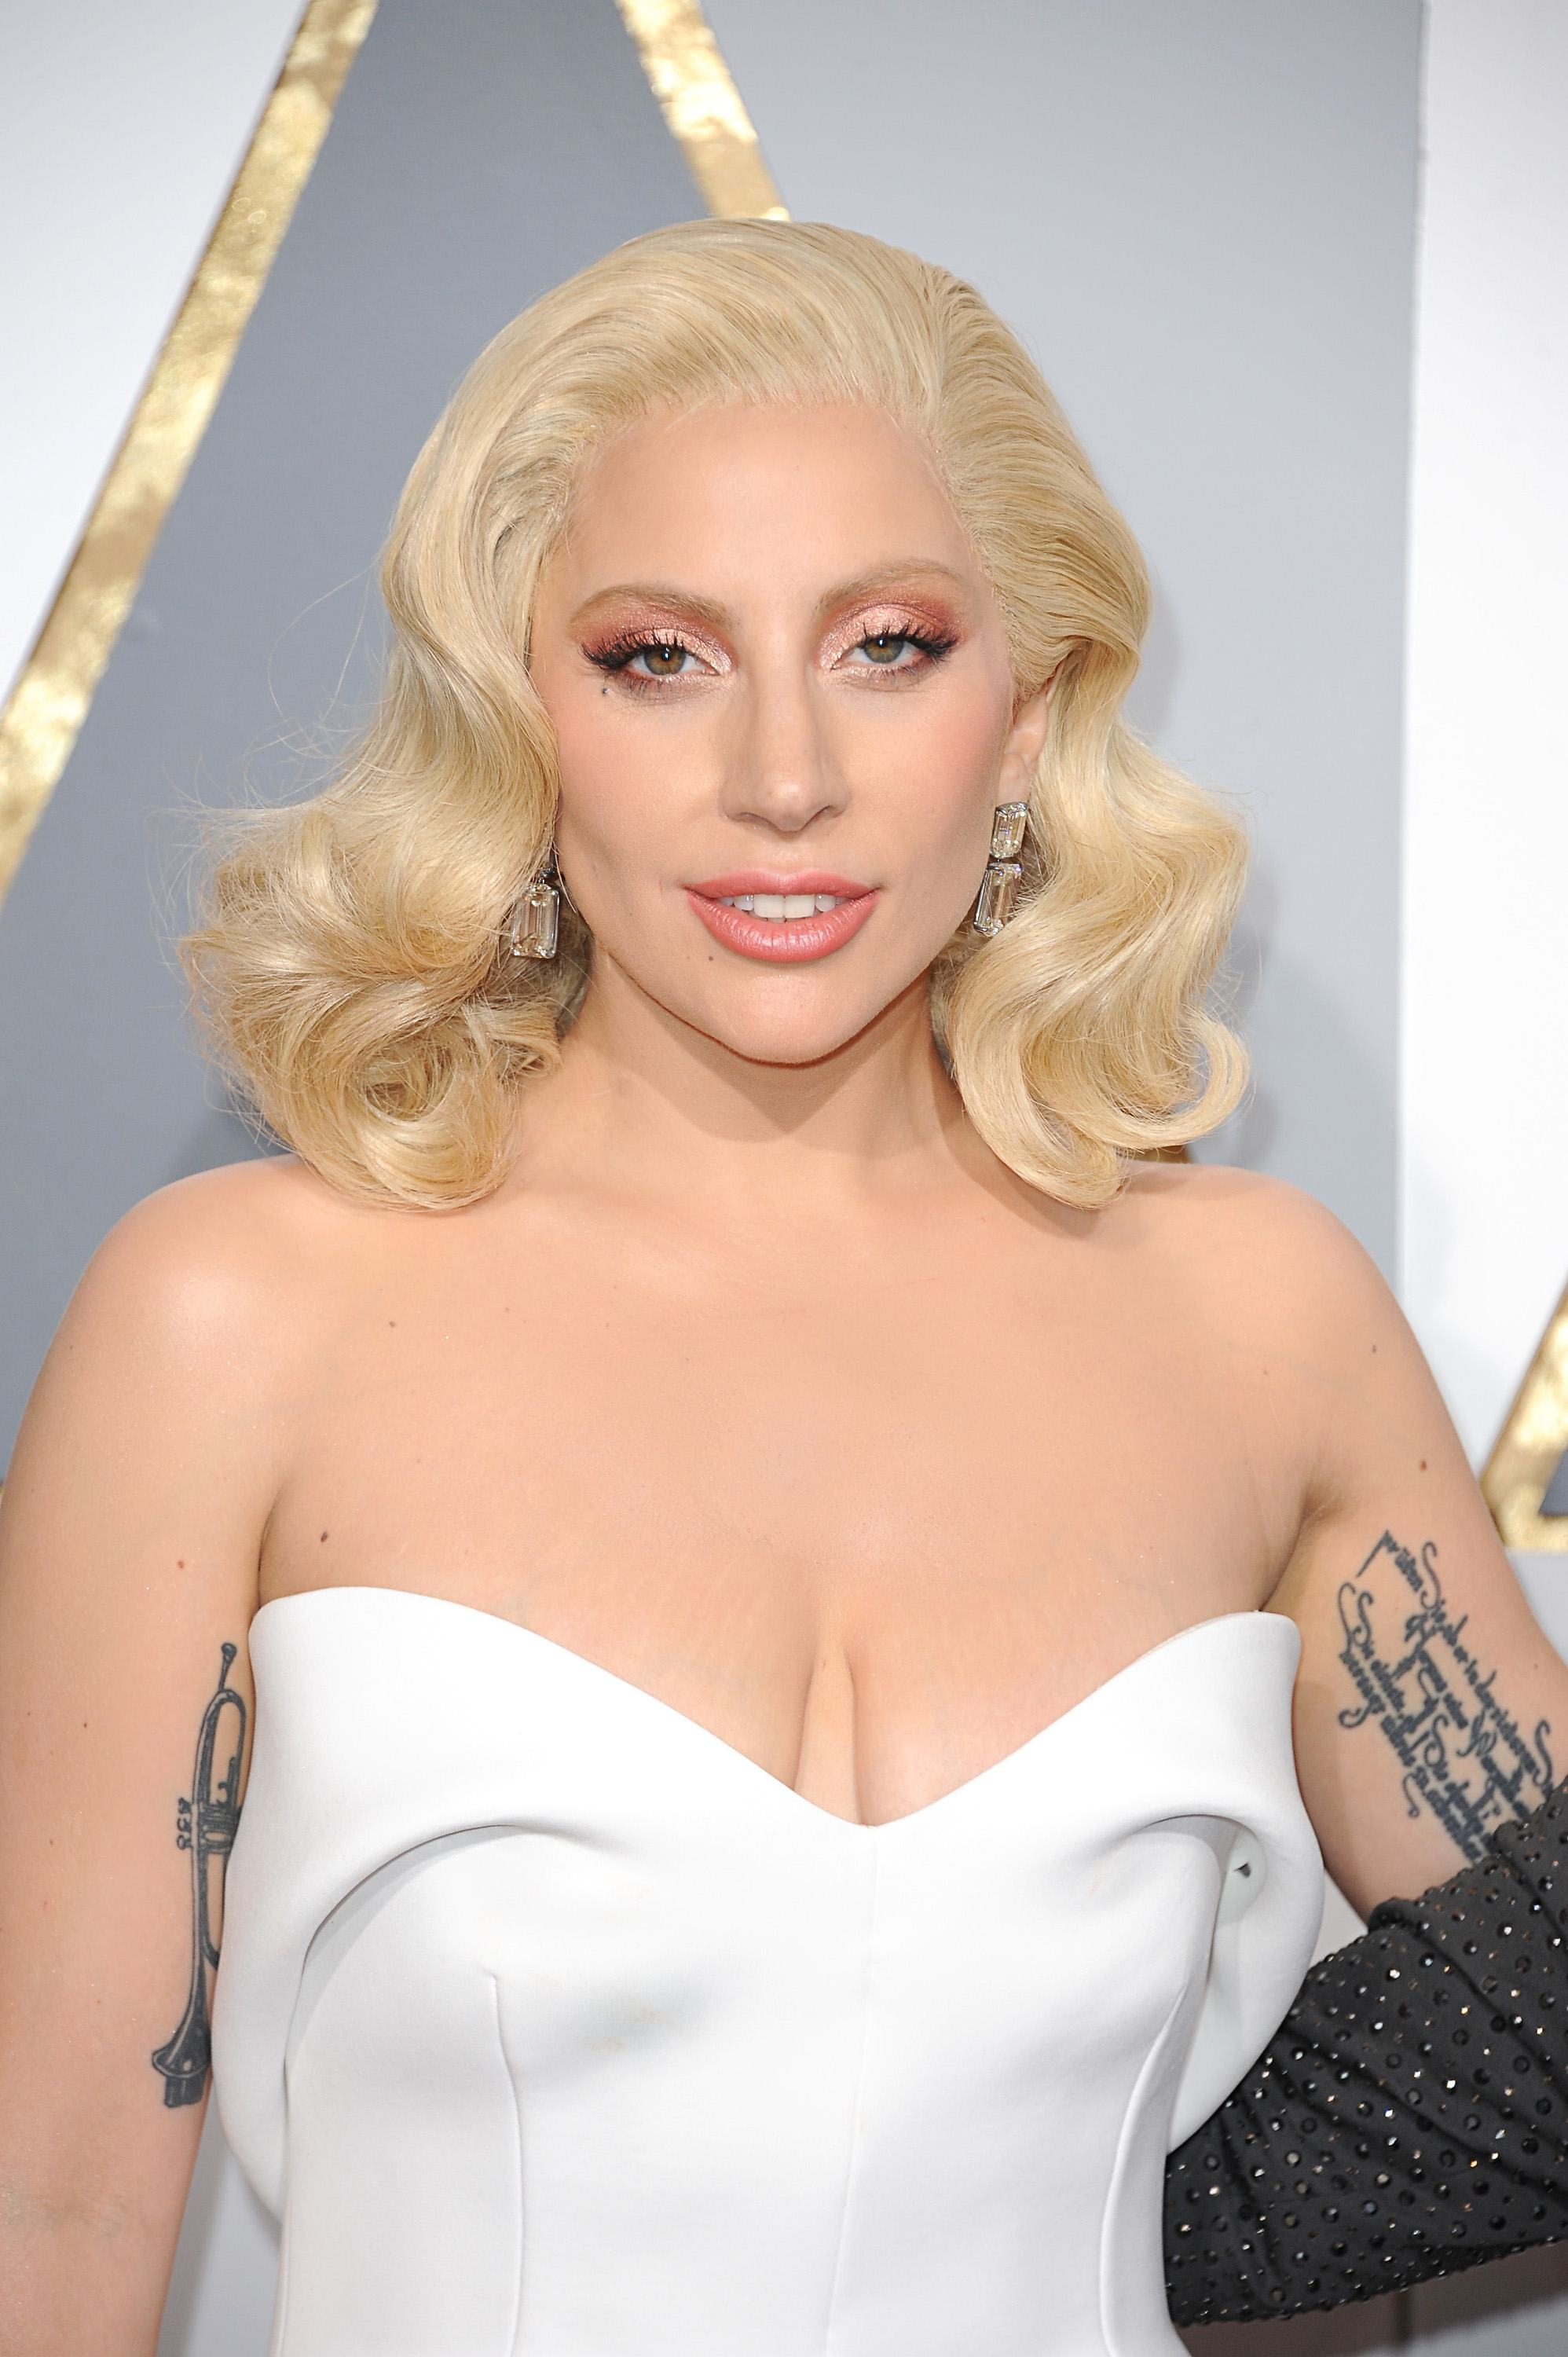 Lady Gaga bei der Ankunft zu der Verleihung der 88. Annual Academy Awards im Dolby Theatre des Hollywood & Highland Centre in Los Angeles / 280216 ***Oscar 2016, arrivals on the red carpet of the 88th Annual Academy Awards Ceremony at the Dolby Theatre at the Hollywood & Highland Centre in Los Angeles, February 28th, 2016***